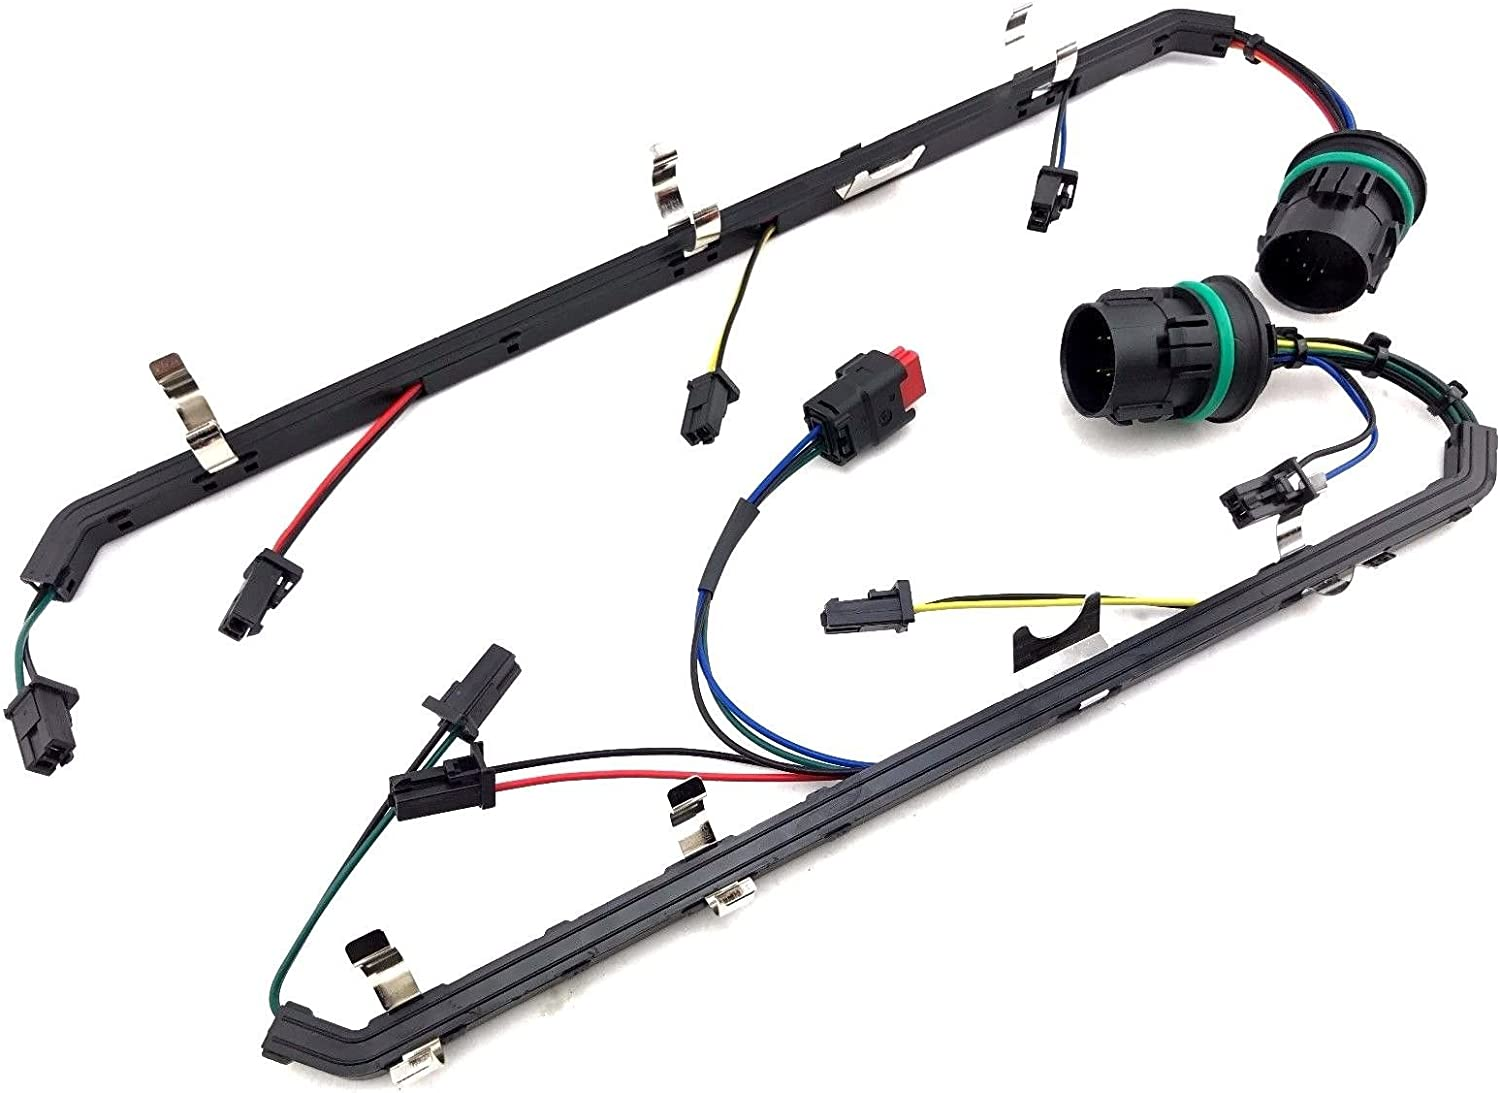 Right /& Left 8C3Z-12A690-BA 8C3Z-12A690-AA 6.4 Glow Plug Harness Kit for Ford F-250 F-350 F-450 F-550 Super Duty V8 6.4L Powerstroke Diesel Engine 2008-2010